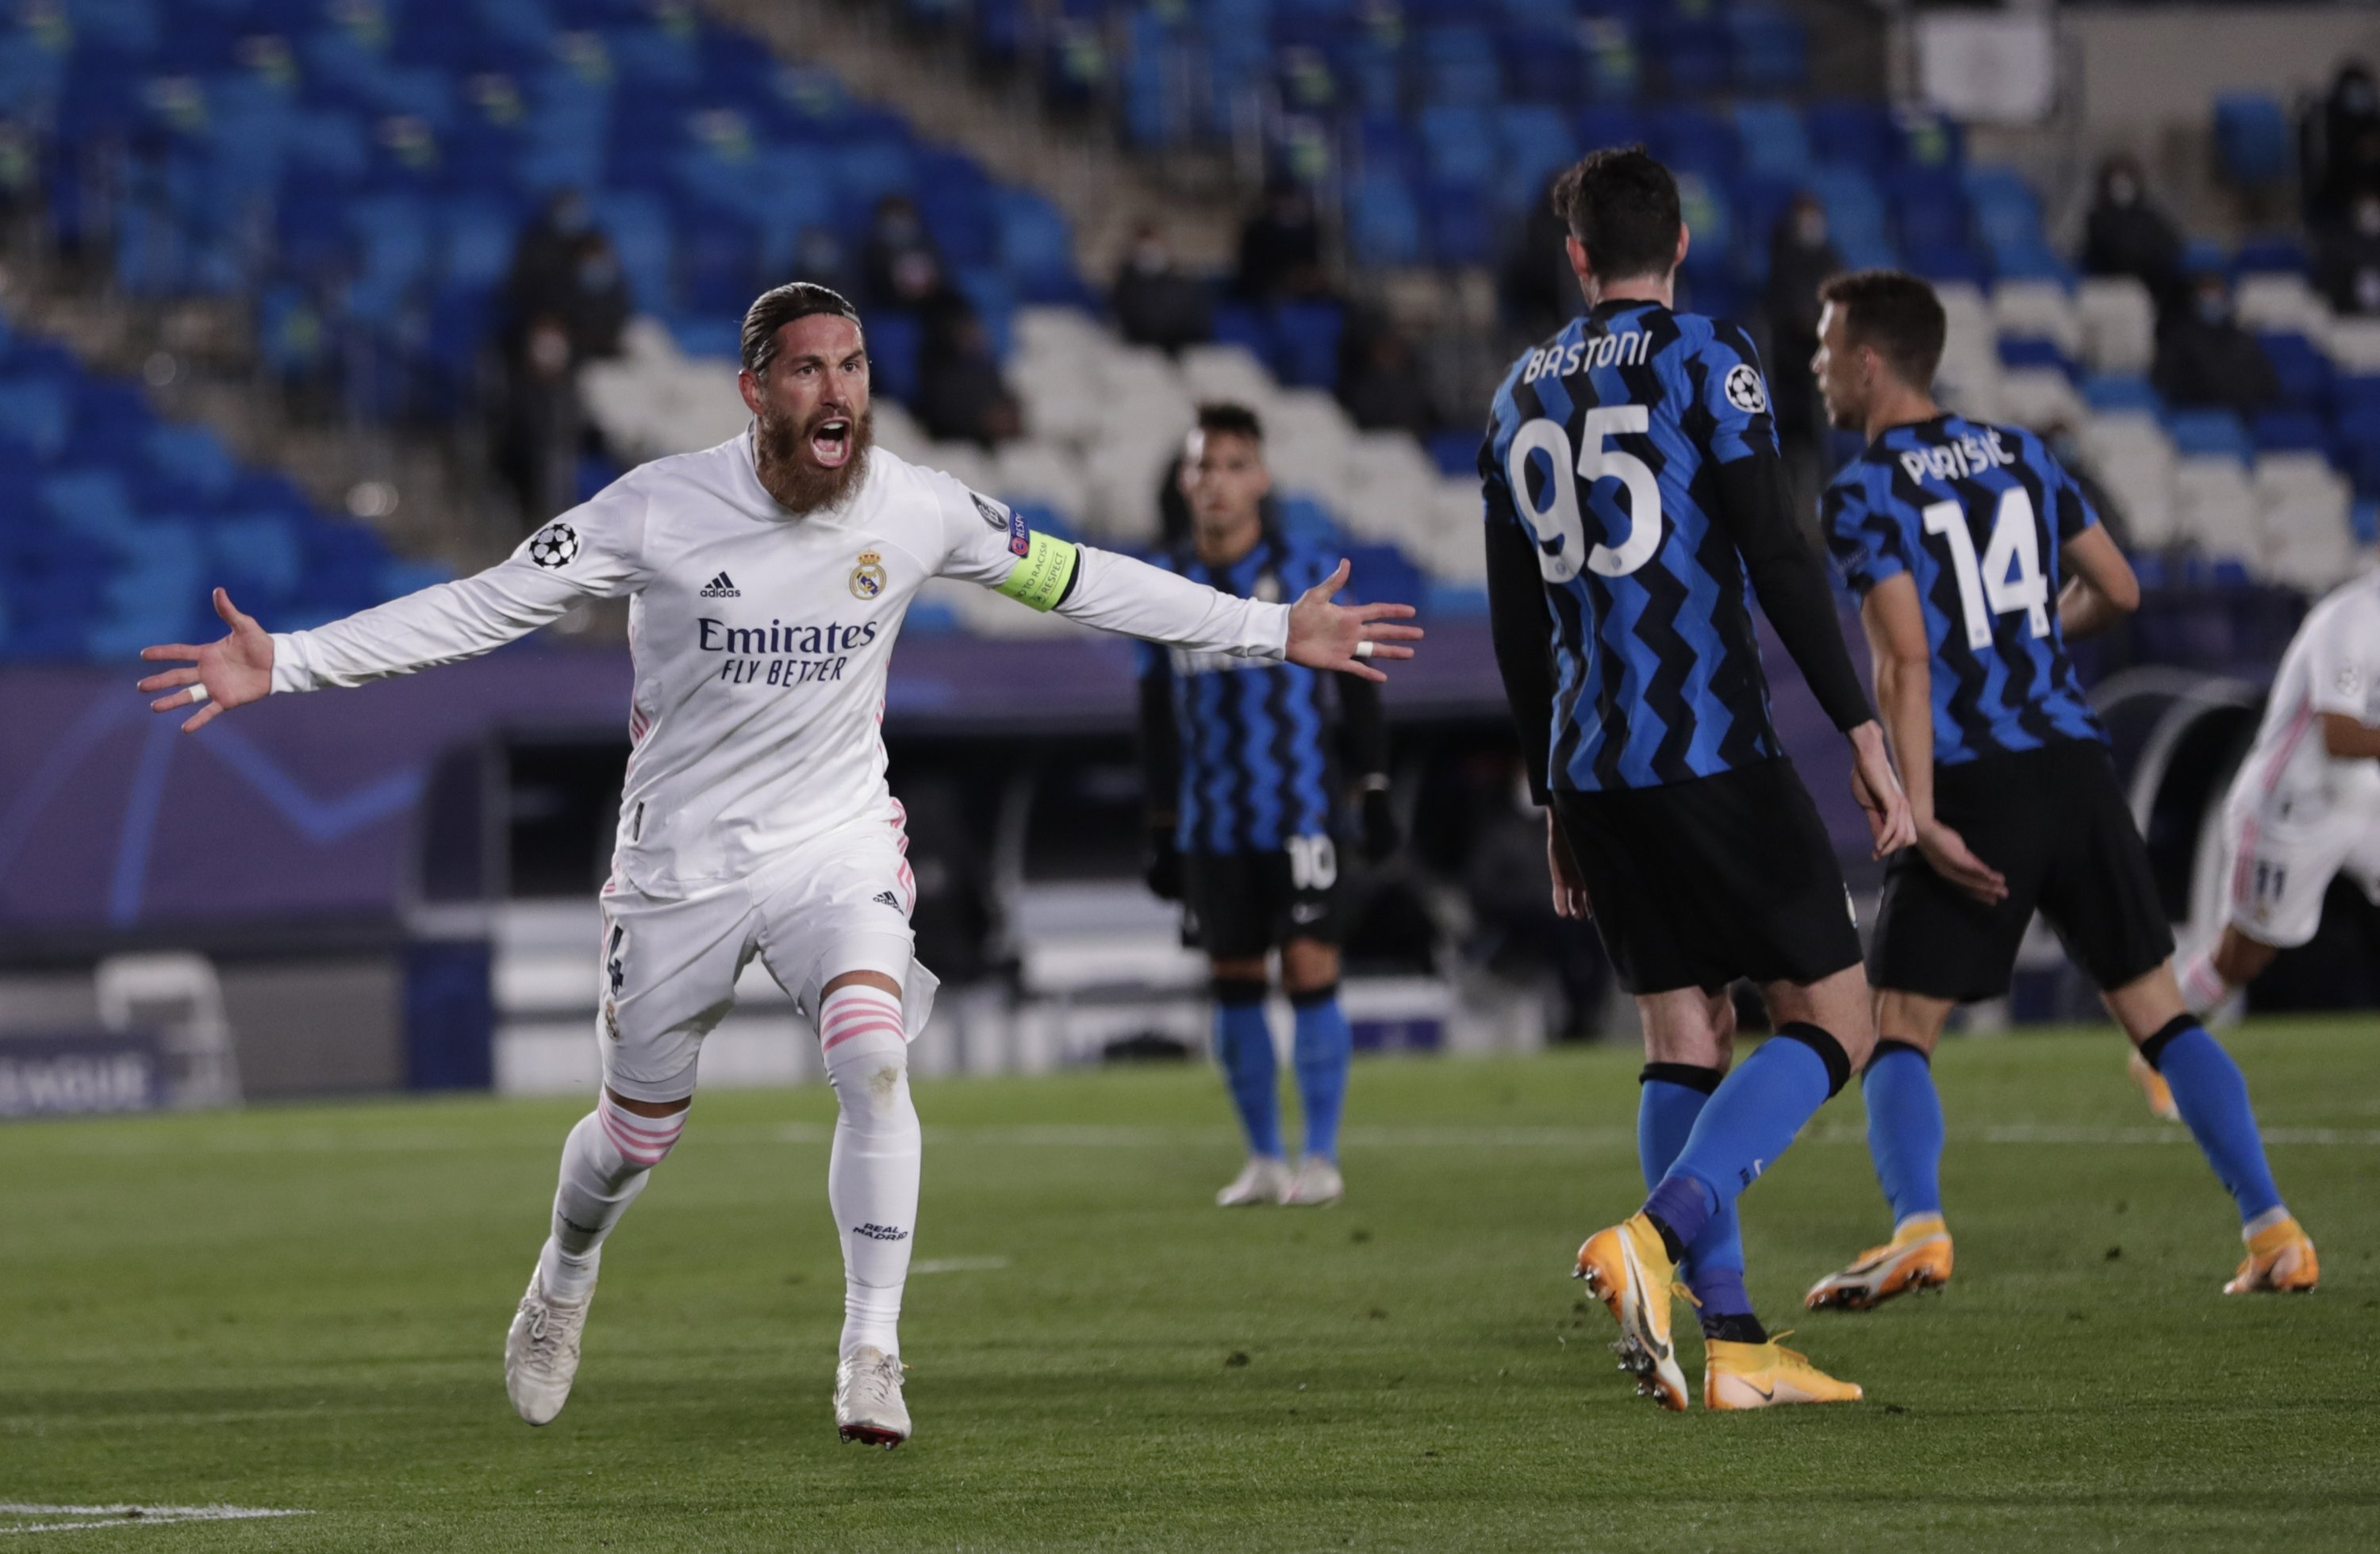 real madrid back on track with 3 2 win over inter daily sabah real madrid back on track with 3 2 win